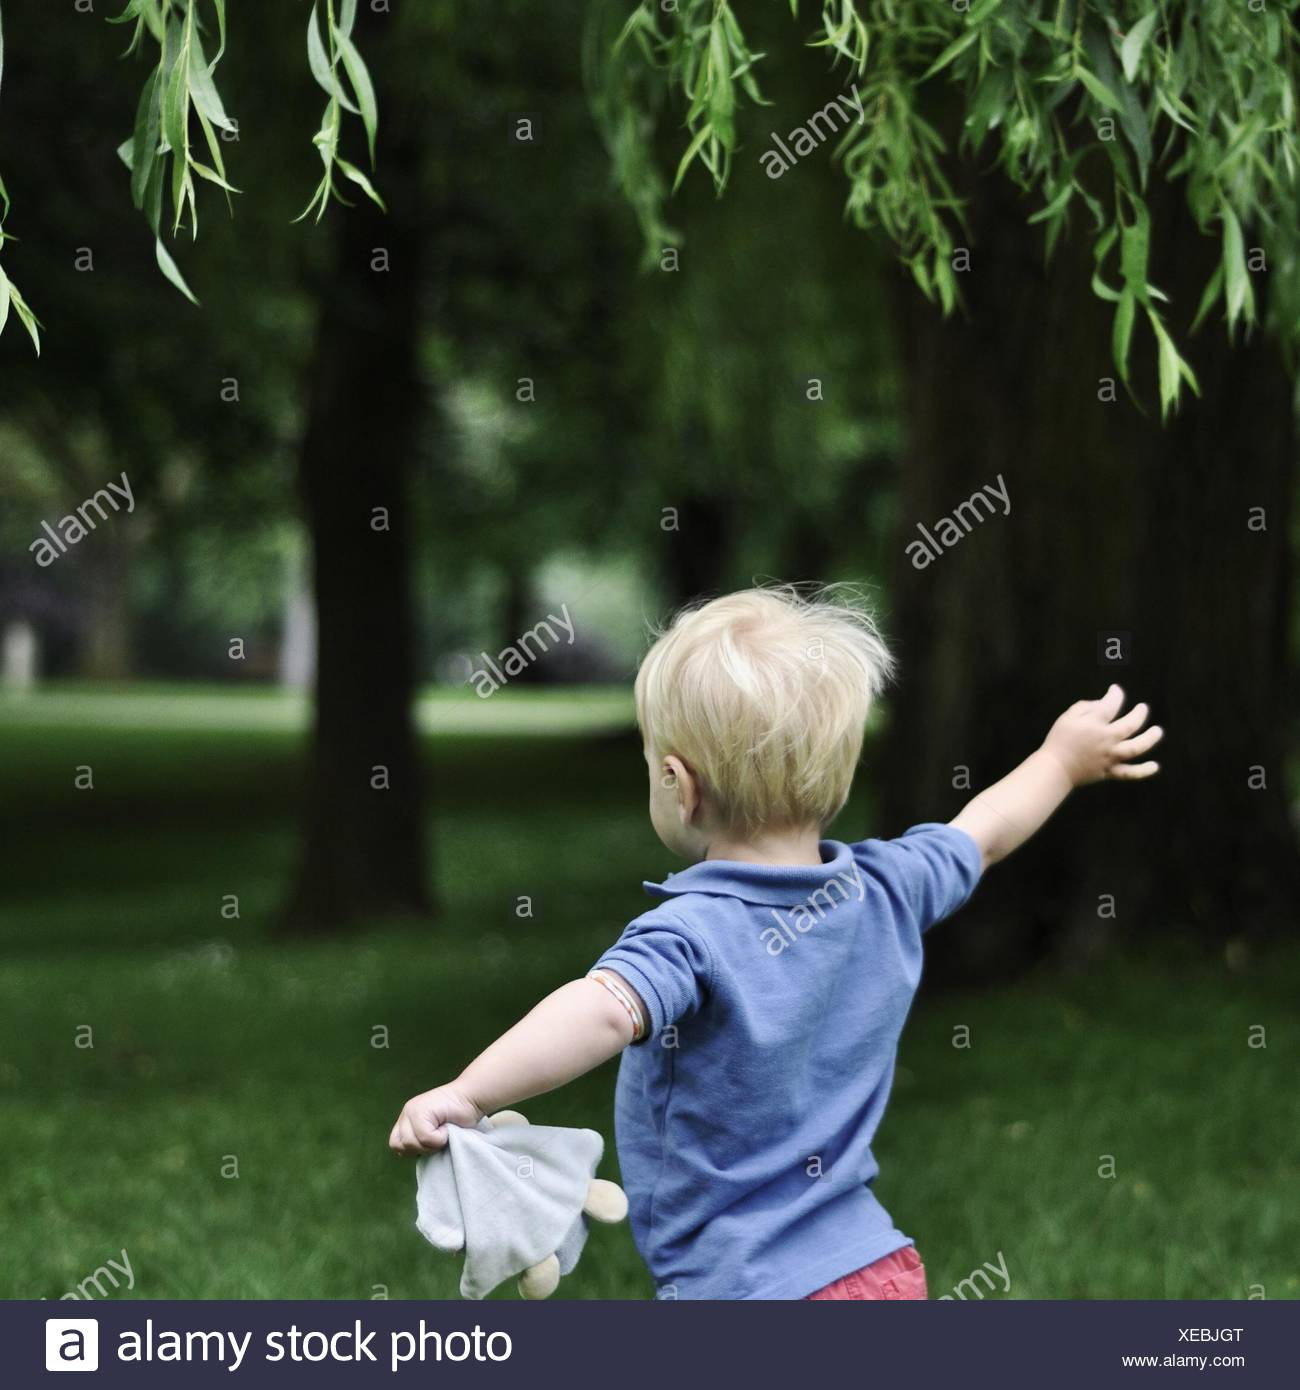 Rear view of little boy running in park with arms outstretched Stock Photo